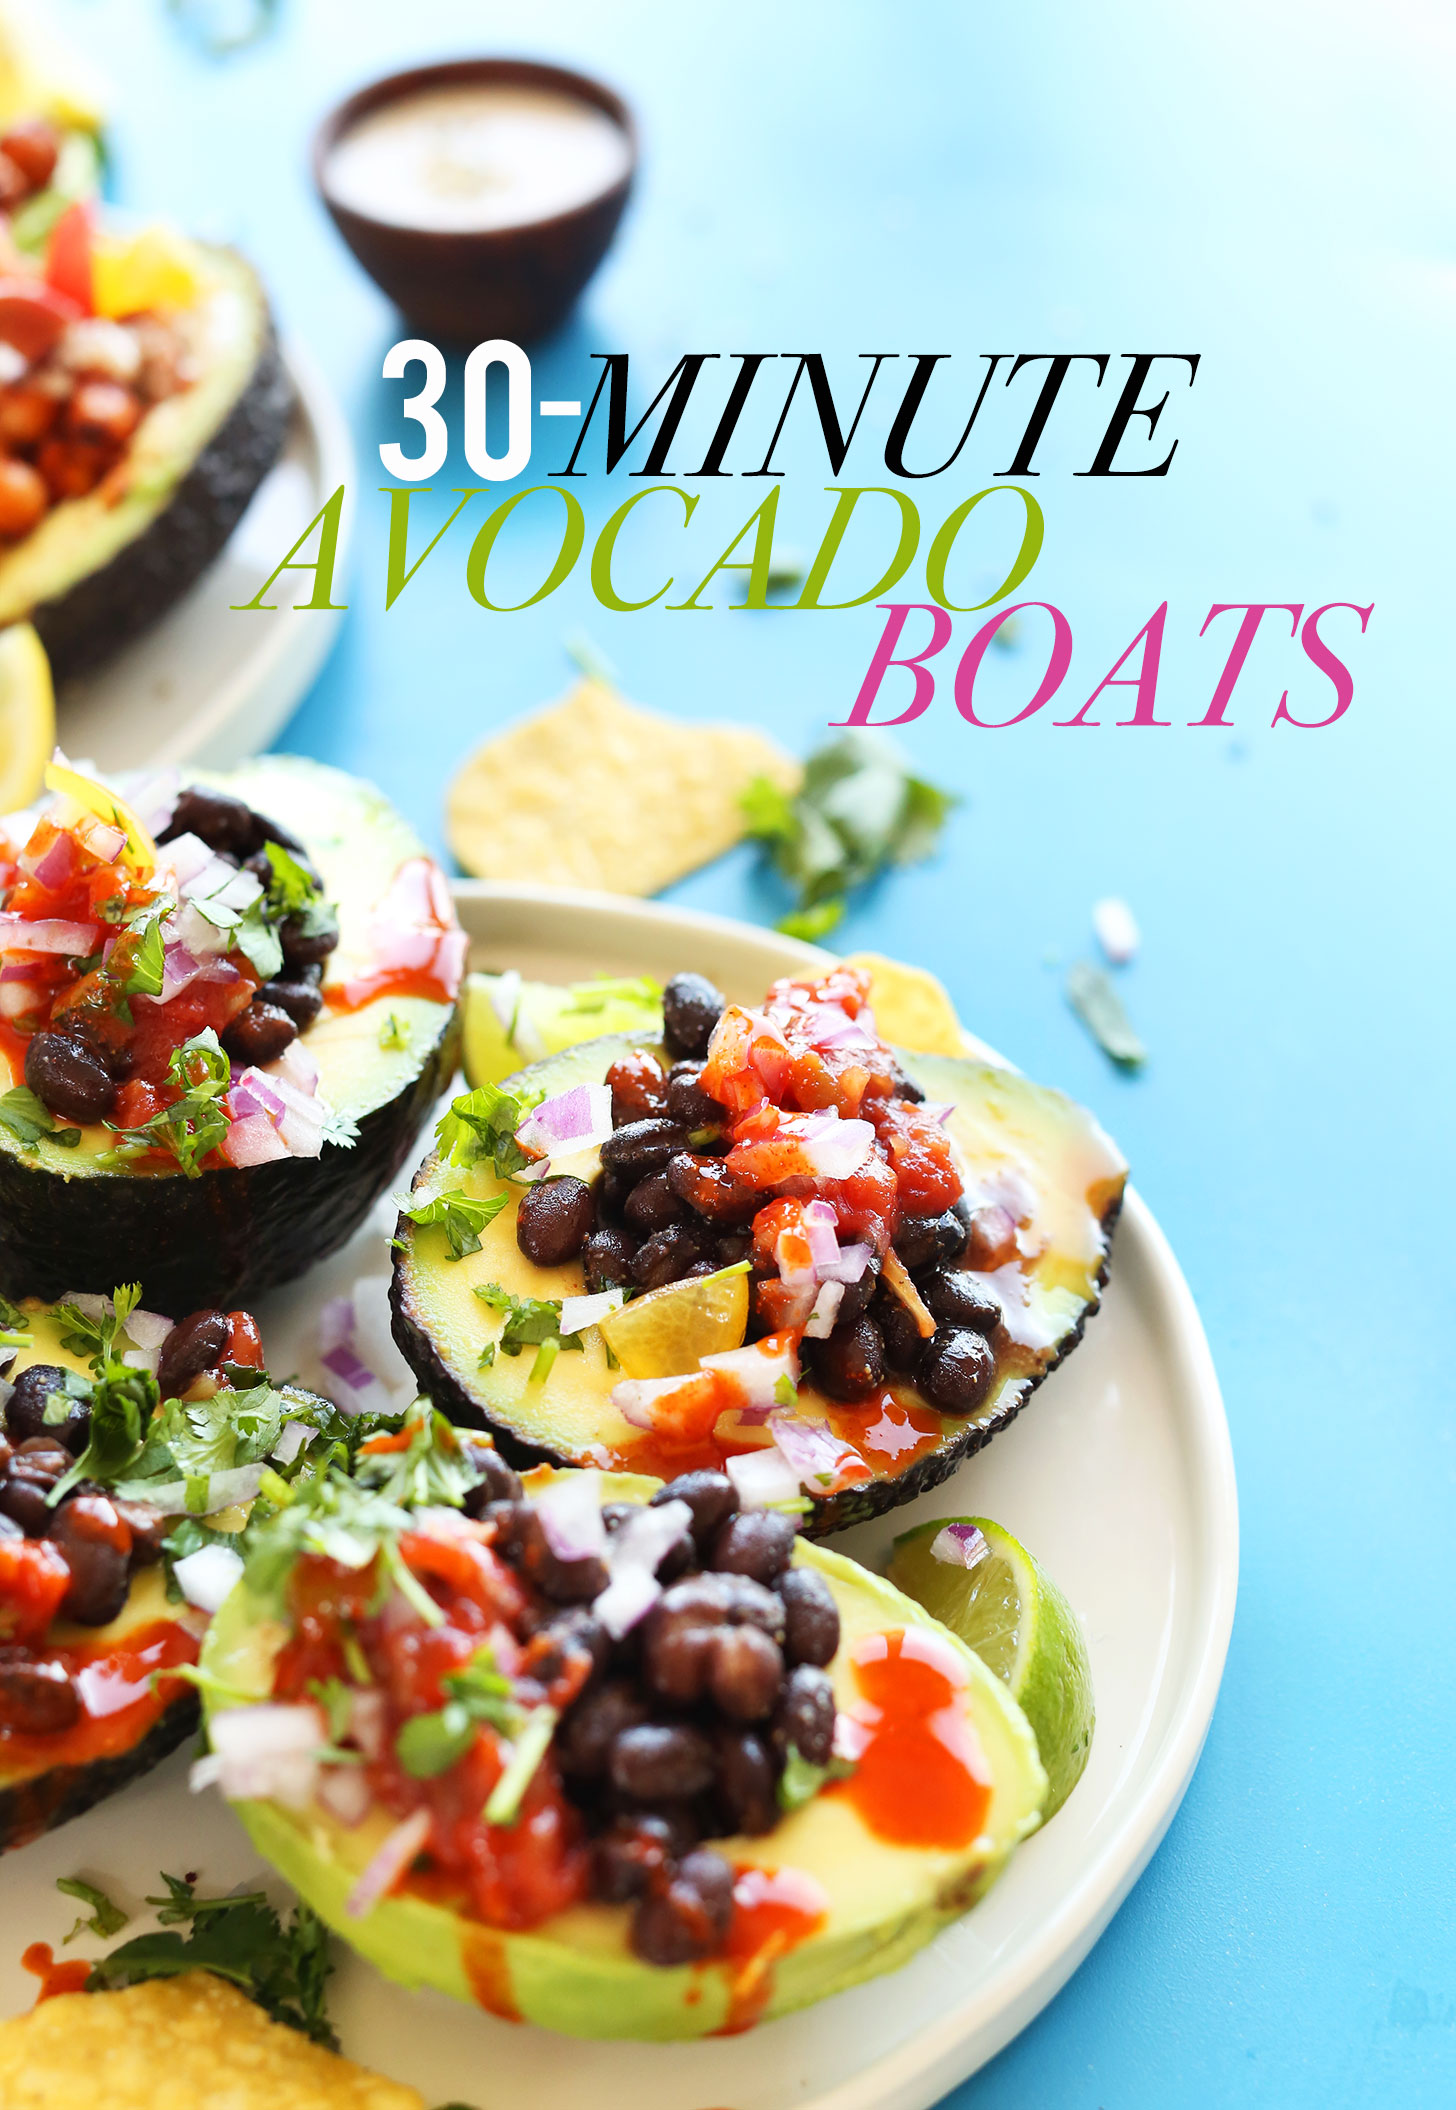 Plate of our Mexican-inspired avocado boats for a simple gluten-free plant-based meal